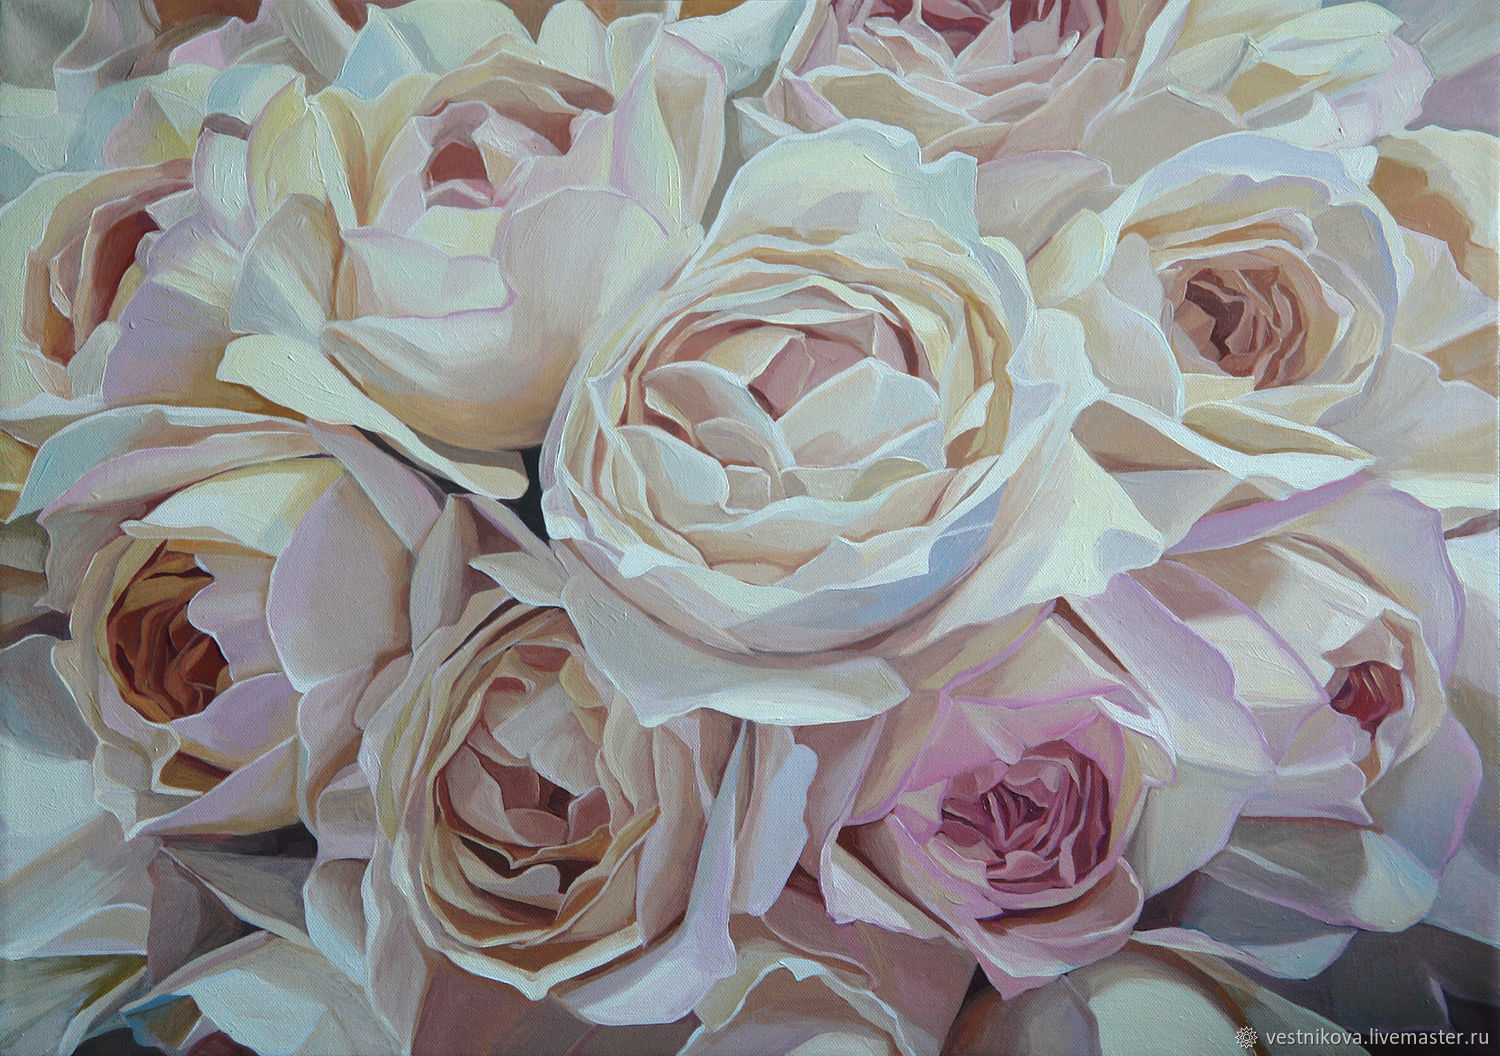 Painting with roses, oil on canvas 50h70, Pictures, Moscow,  Фото №1